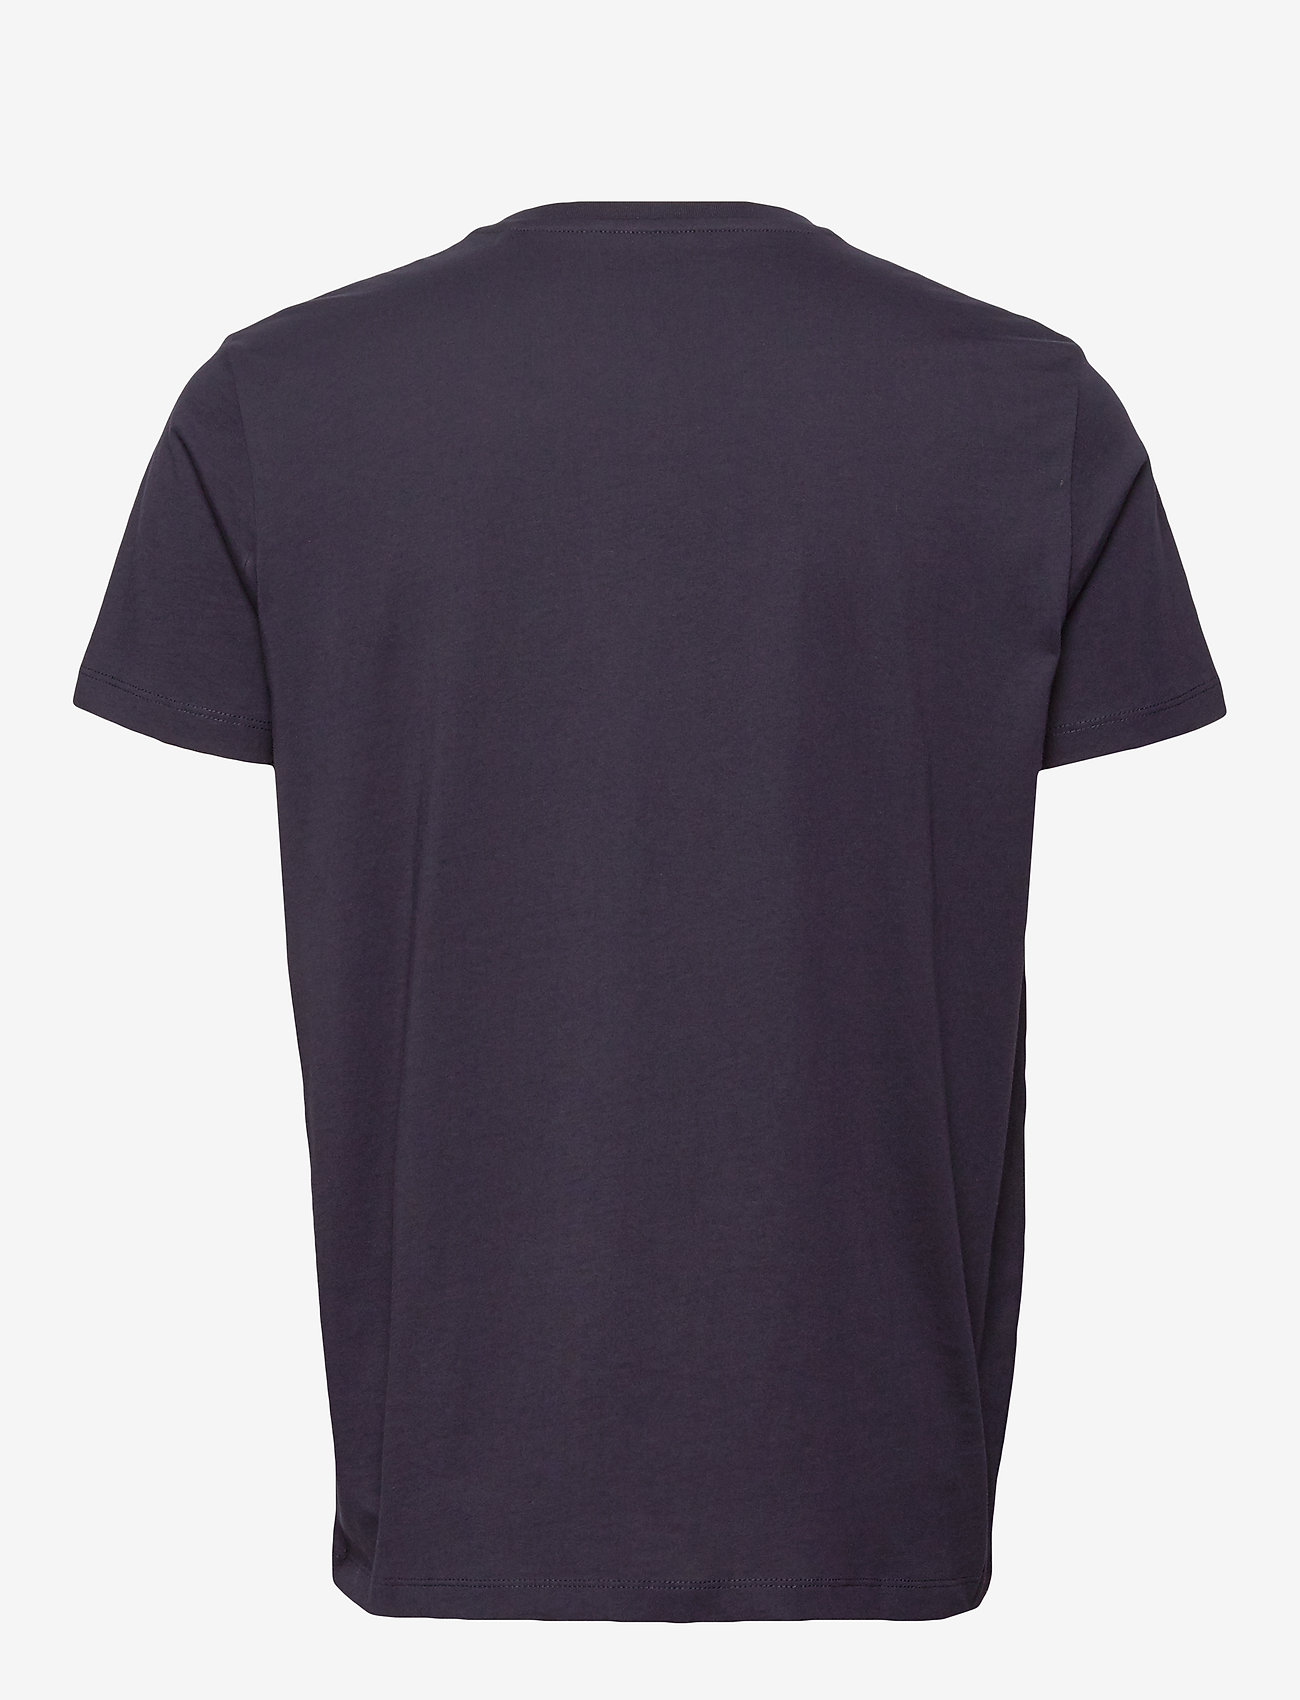 Esprit Casual - T-Shirts - short-sleeved t-shirts - navy - 1